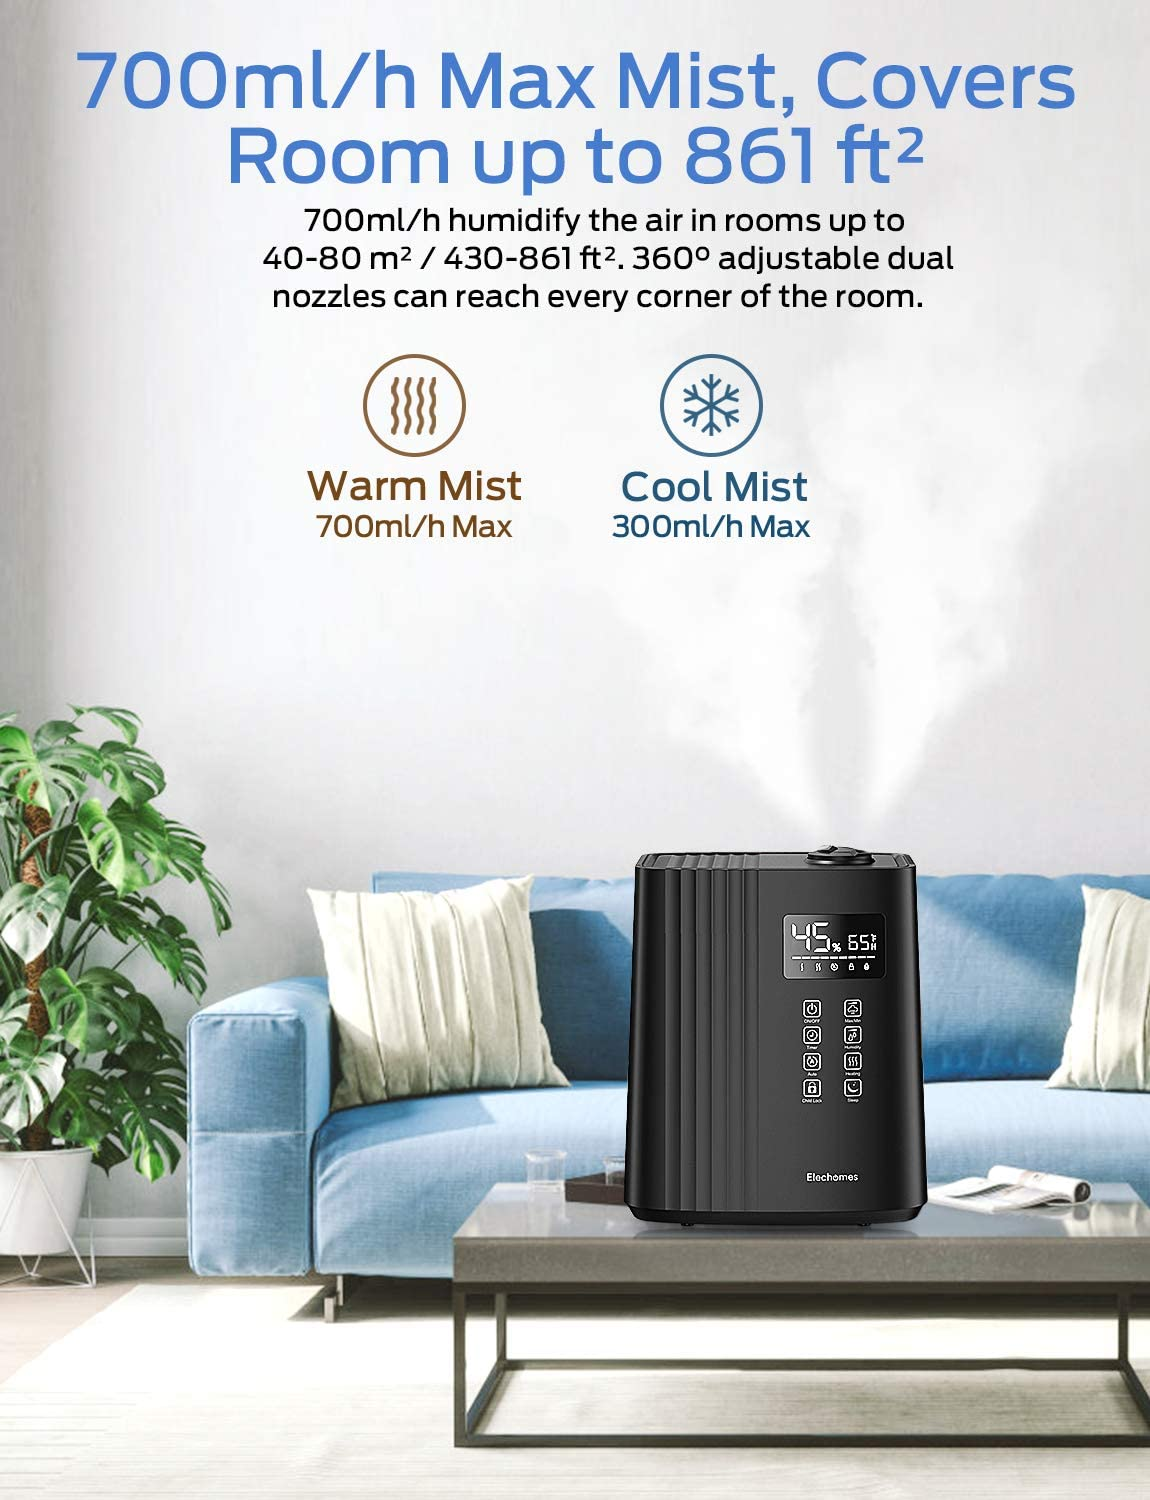 Elechomes SH8830 Warm and Cool Mist Humidifiers 6.5 Liter Top Fill Humidifier